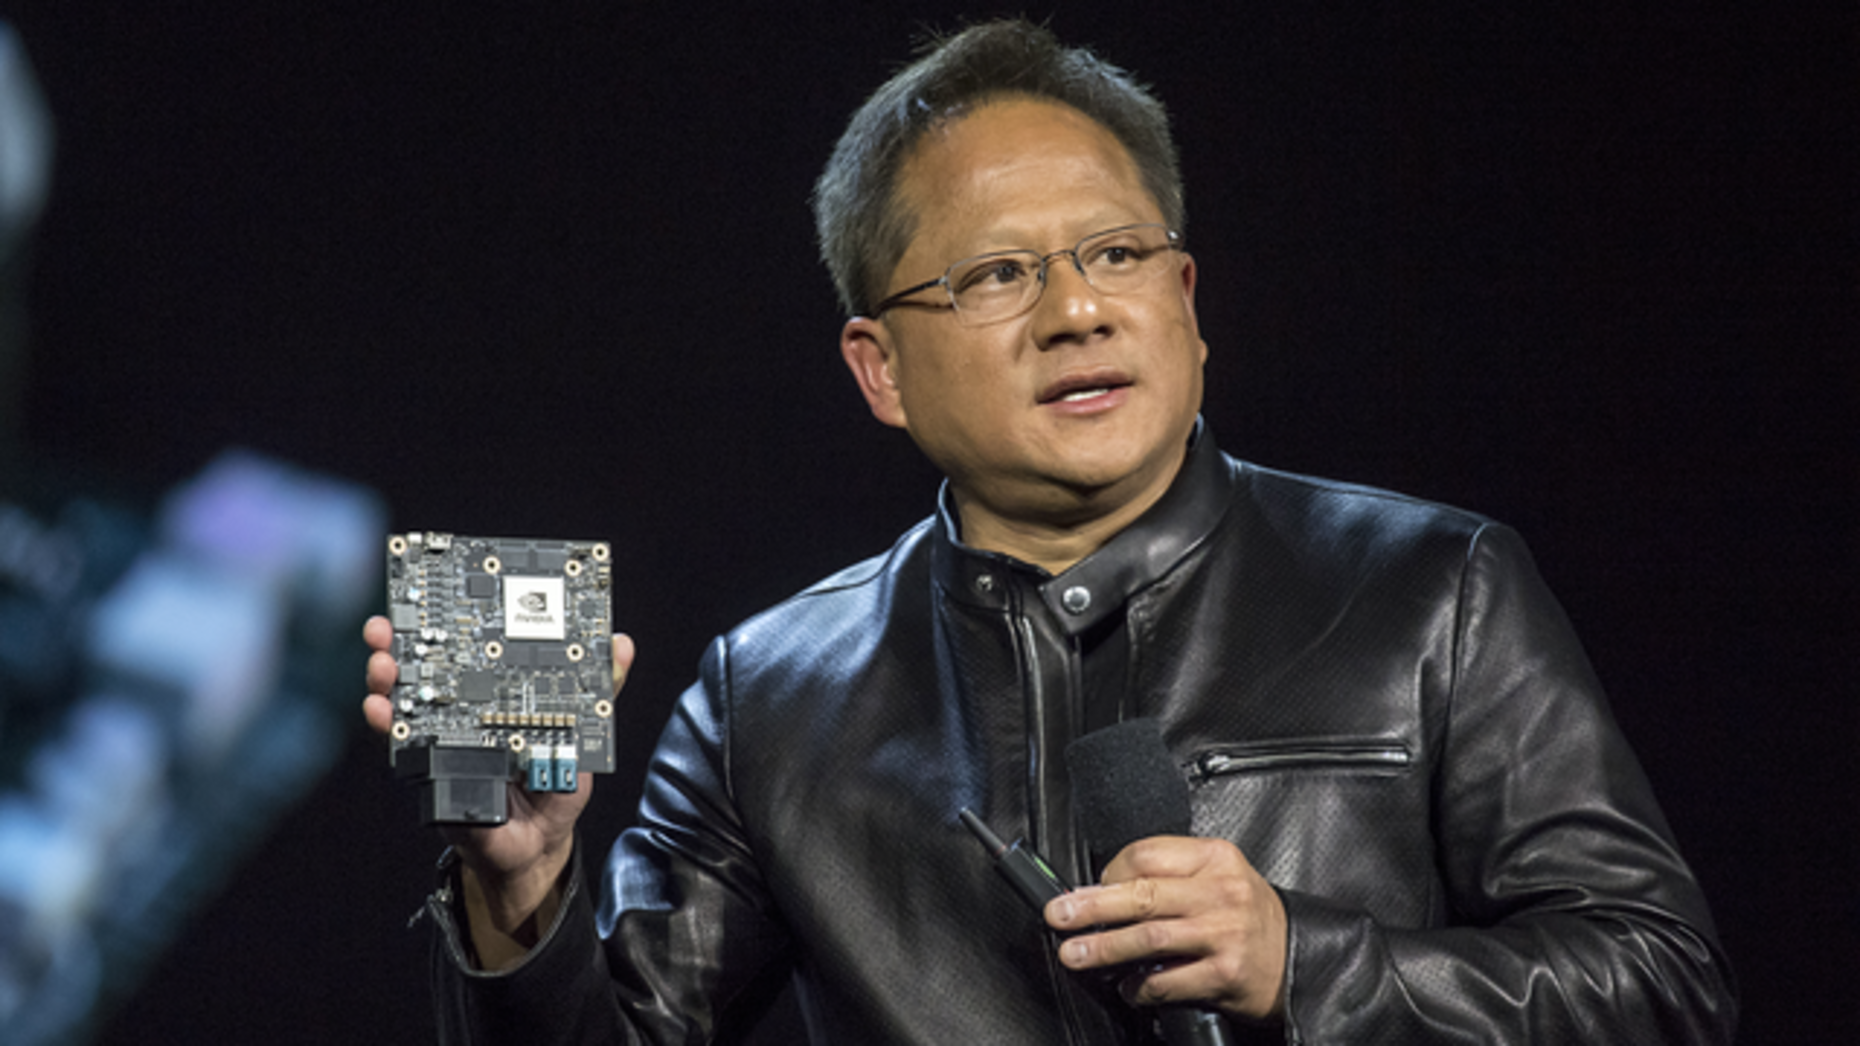 Nvidia CEO Jen-Hsun Huang, speaking at the 2017 Consumer Electronics Show in Las Vegas. Photo: Bloomberg